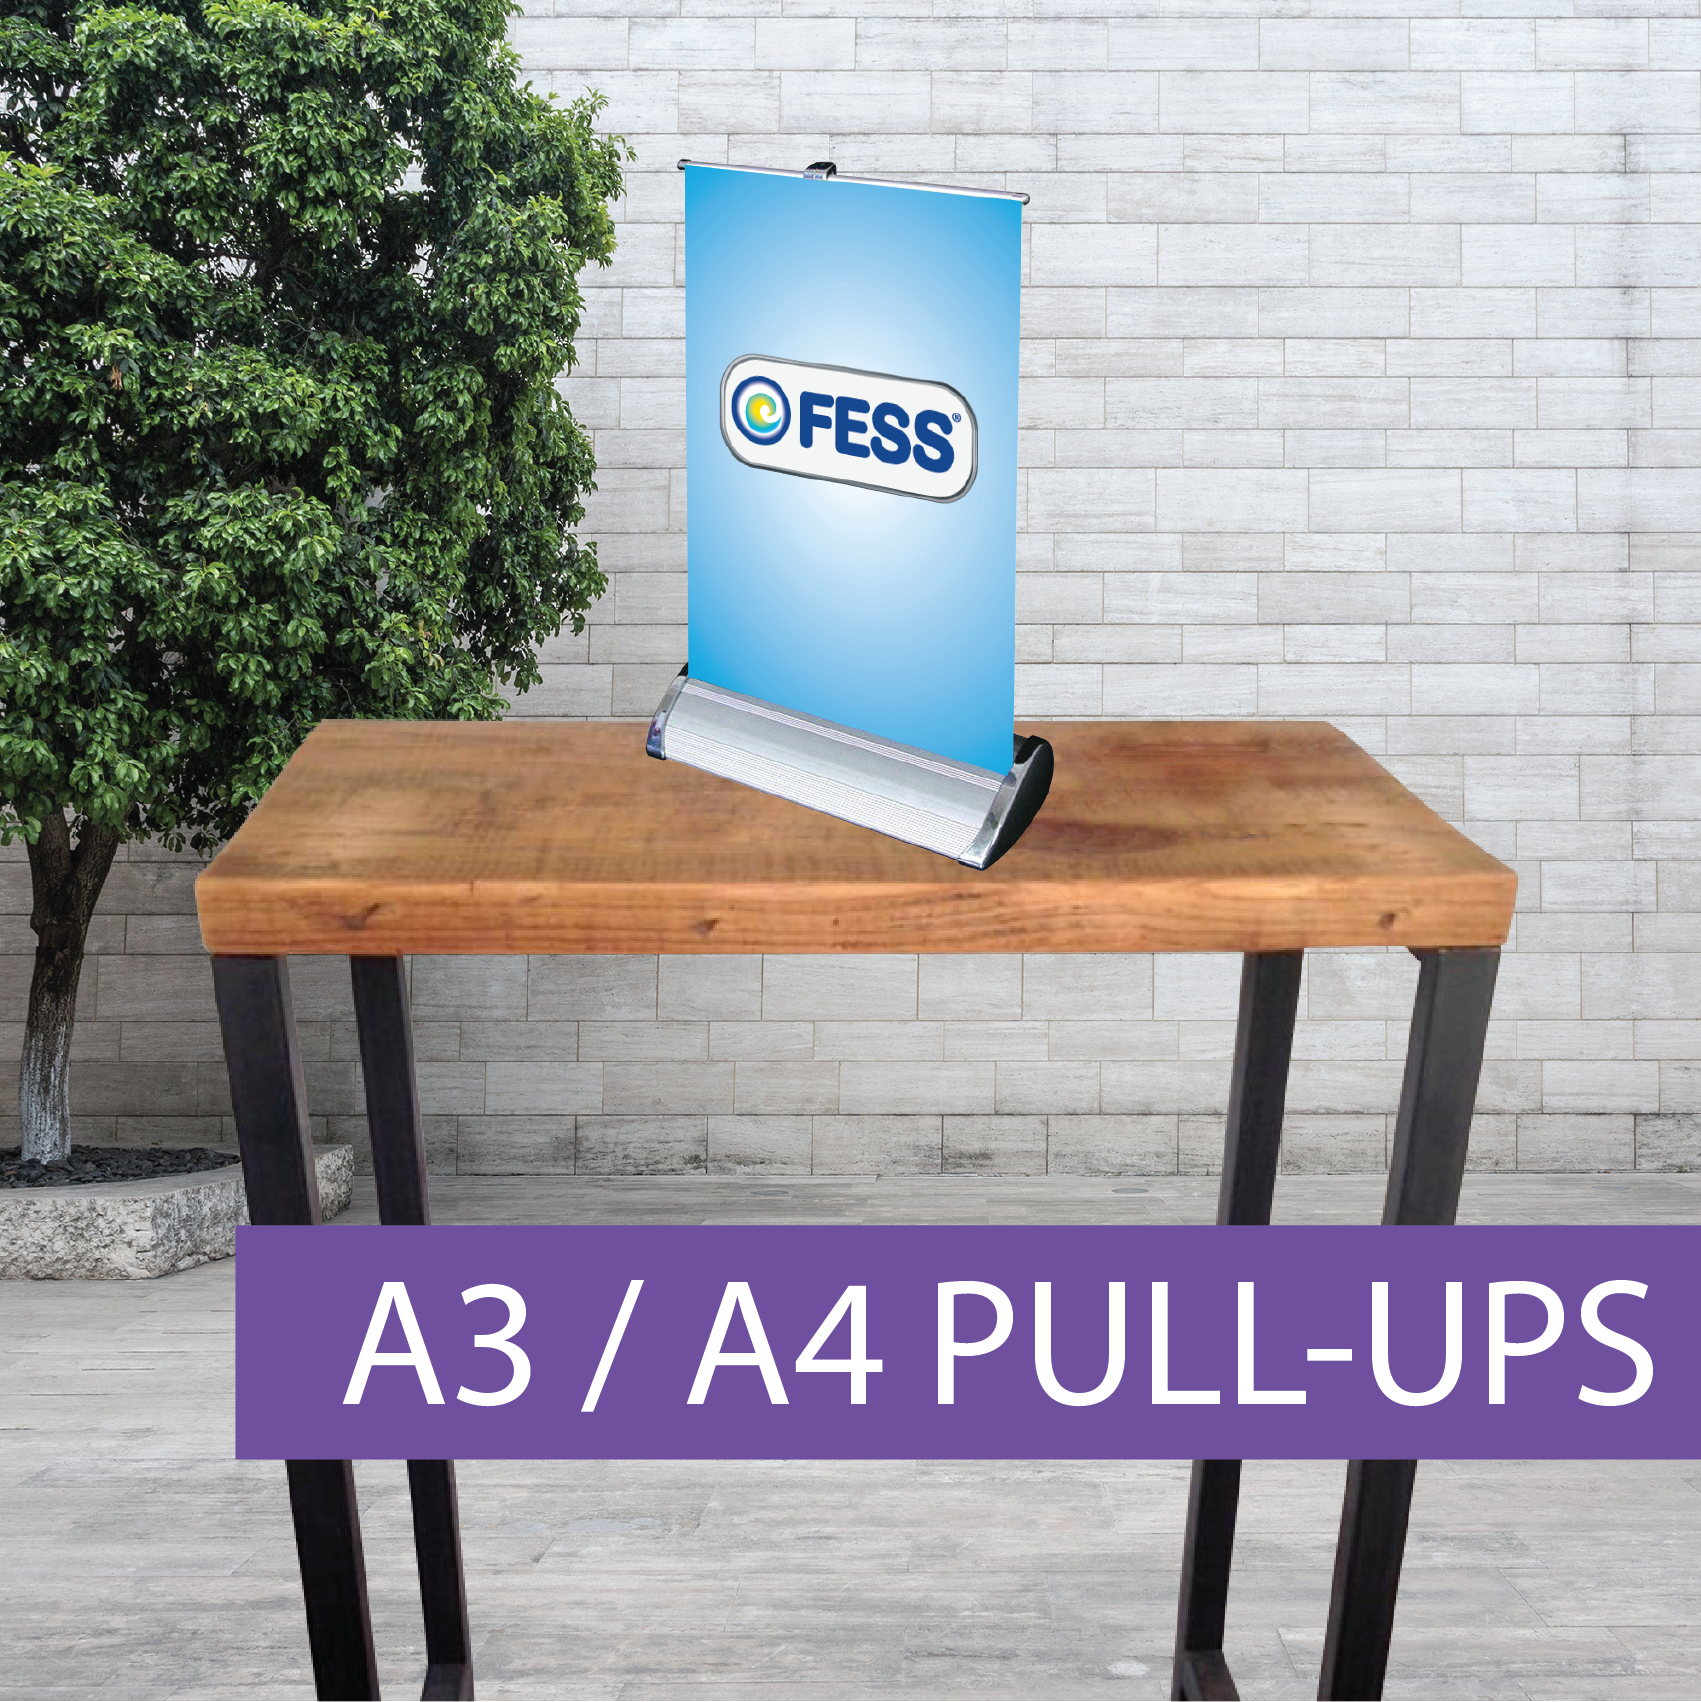 Small pull-up banner